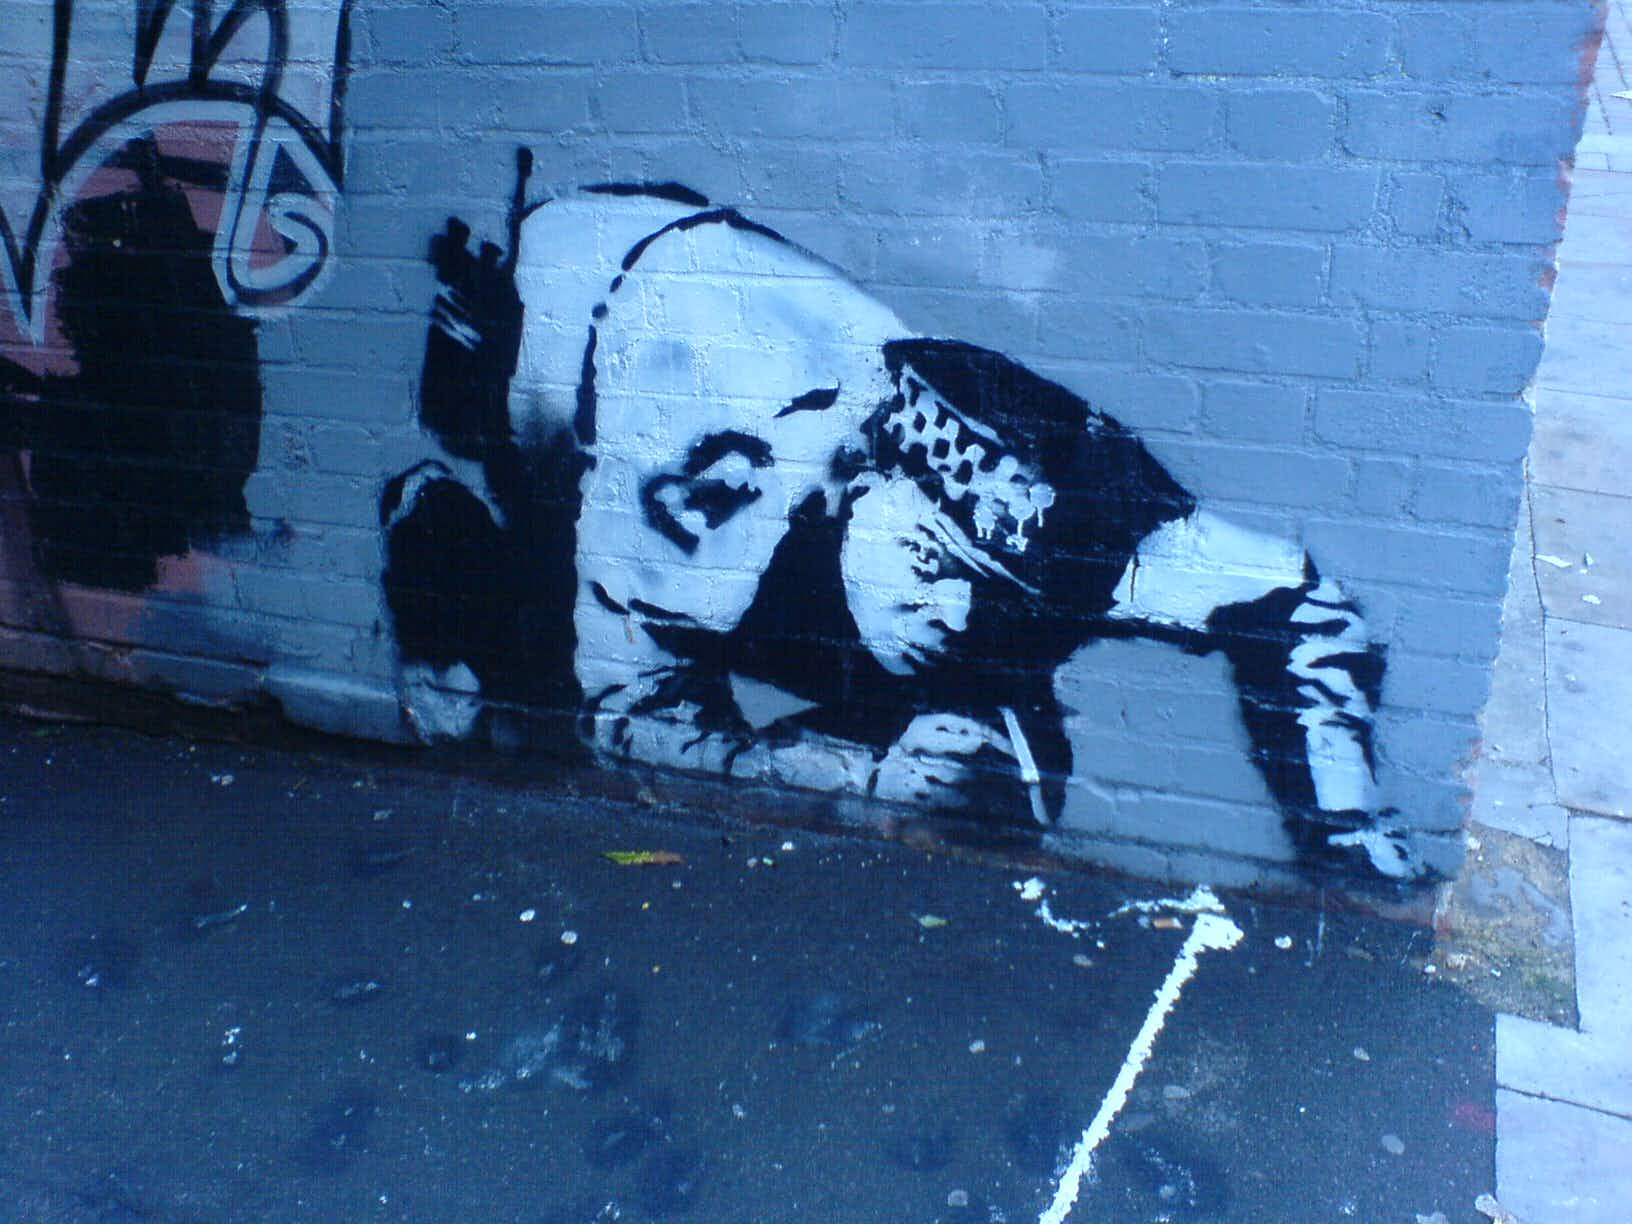 A painted-over Banksy artwork has been discovered and restored to go on display in London